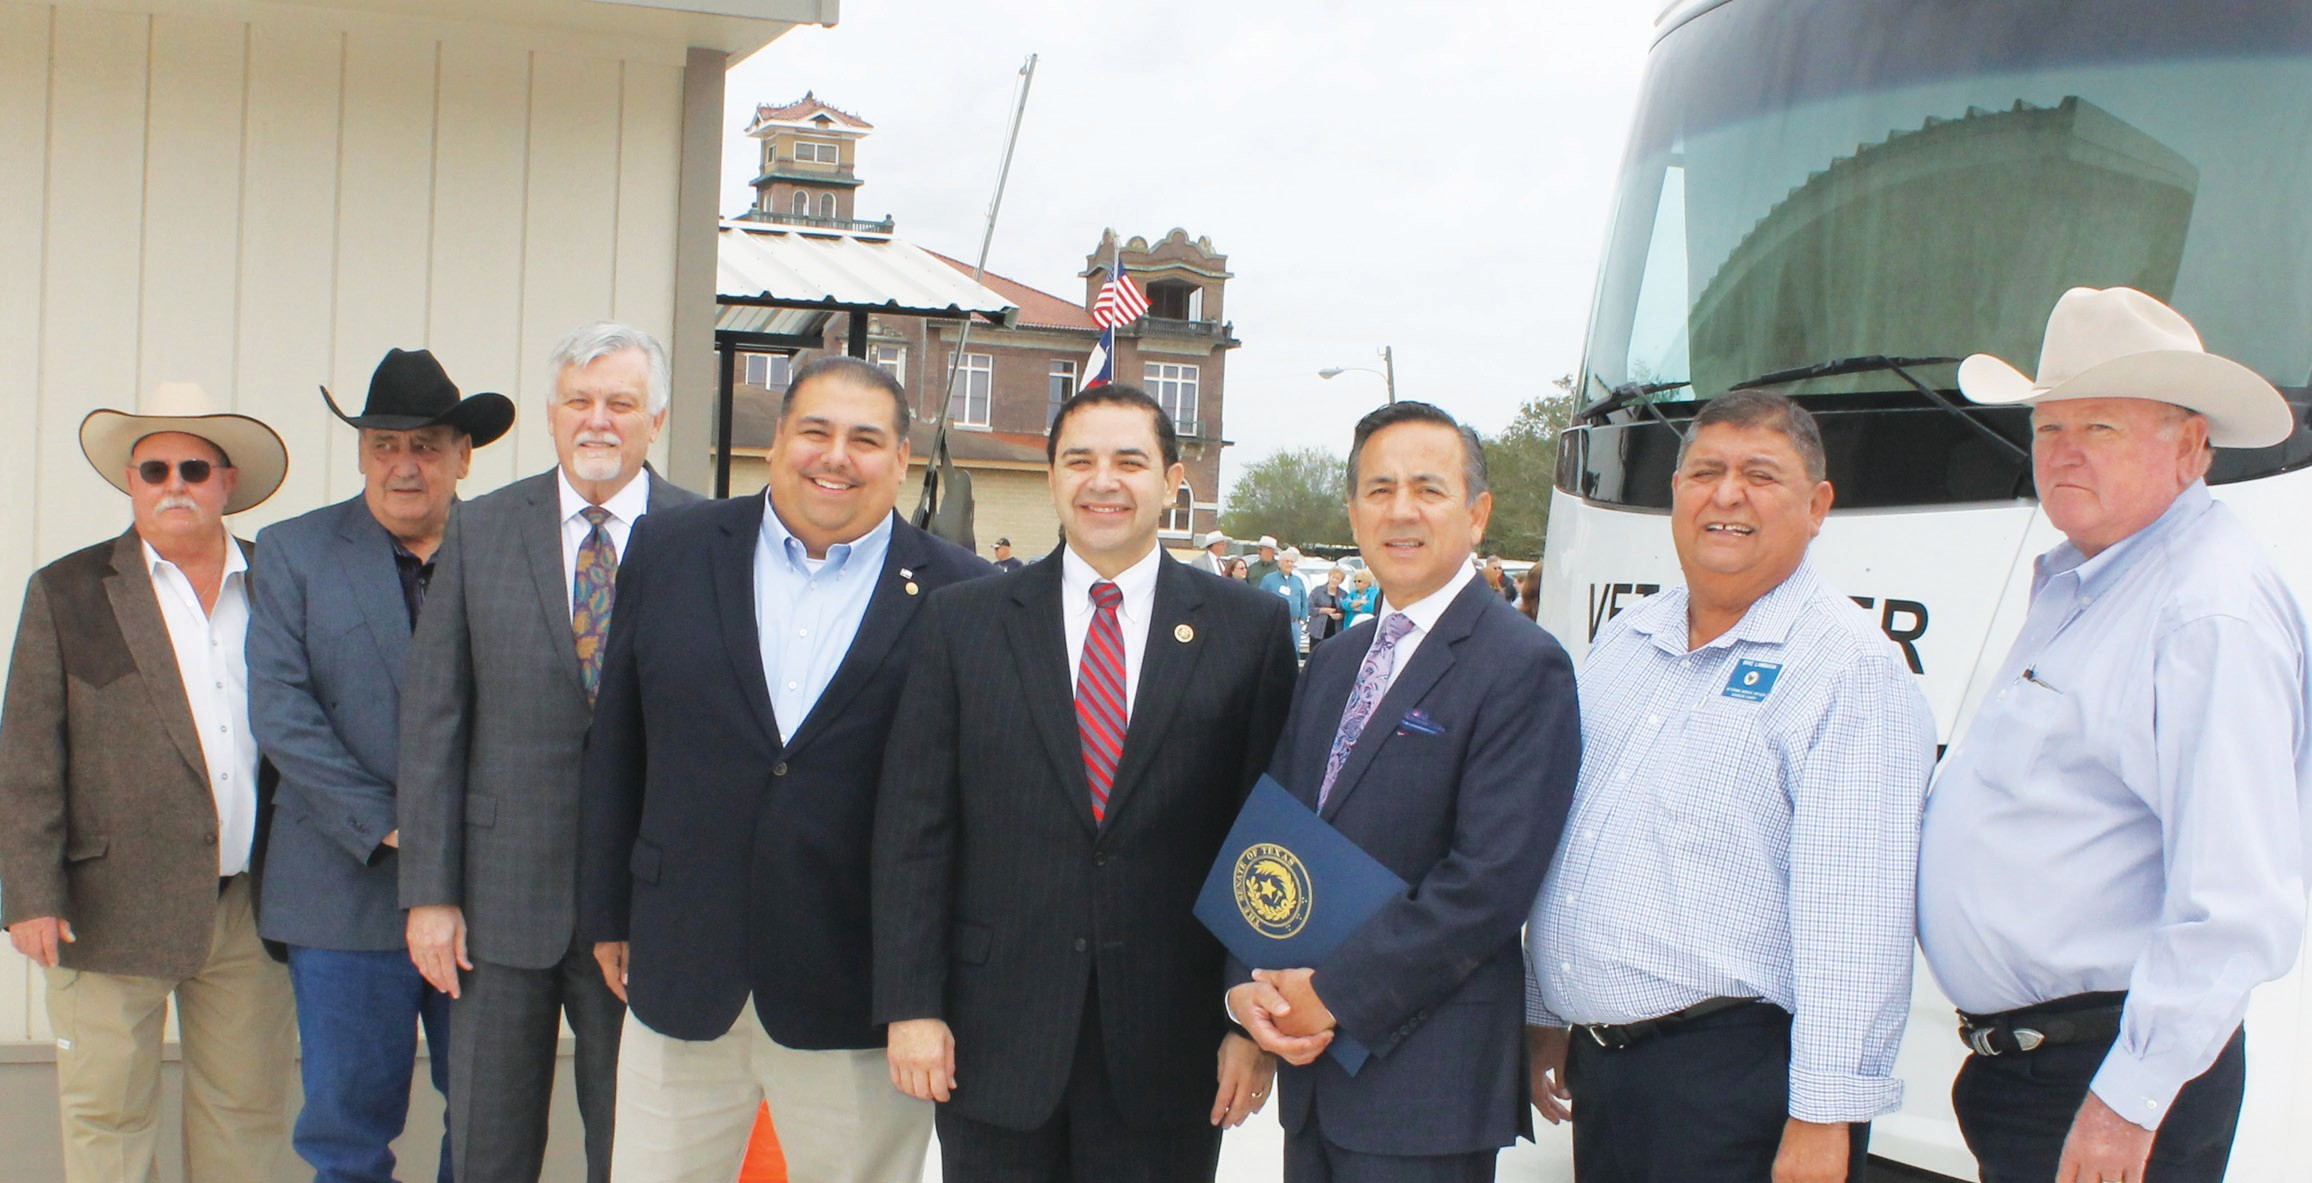 In Jourdanton, a Grand Opening was held at the Veteran's Service Office at 818 Main St., at noon on Tuesday, November 24. From left are, Commissioner Lonnie Gillespie, Pct. 1; Commissioner Freddie Ogden, Pct. 3; Atascosa County Judge Bob Hurley, Representative Ryan Guillen, Congressman Henry Cuellar, Senator Carlos Uresti, Mike Lambaria, Veterans Service Officer and Commissioner Bill Carroll, Pct. 4.